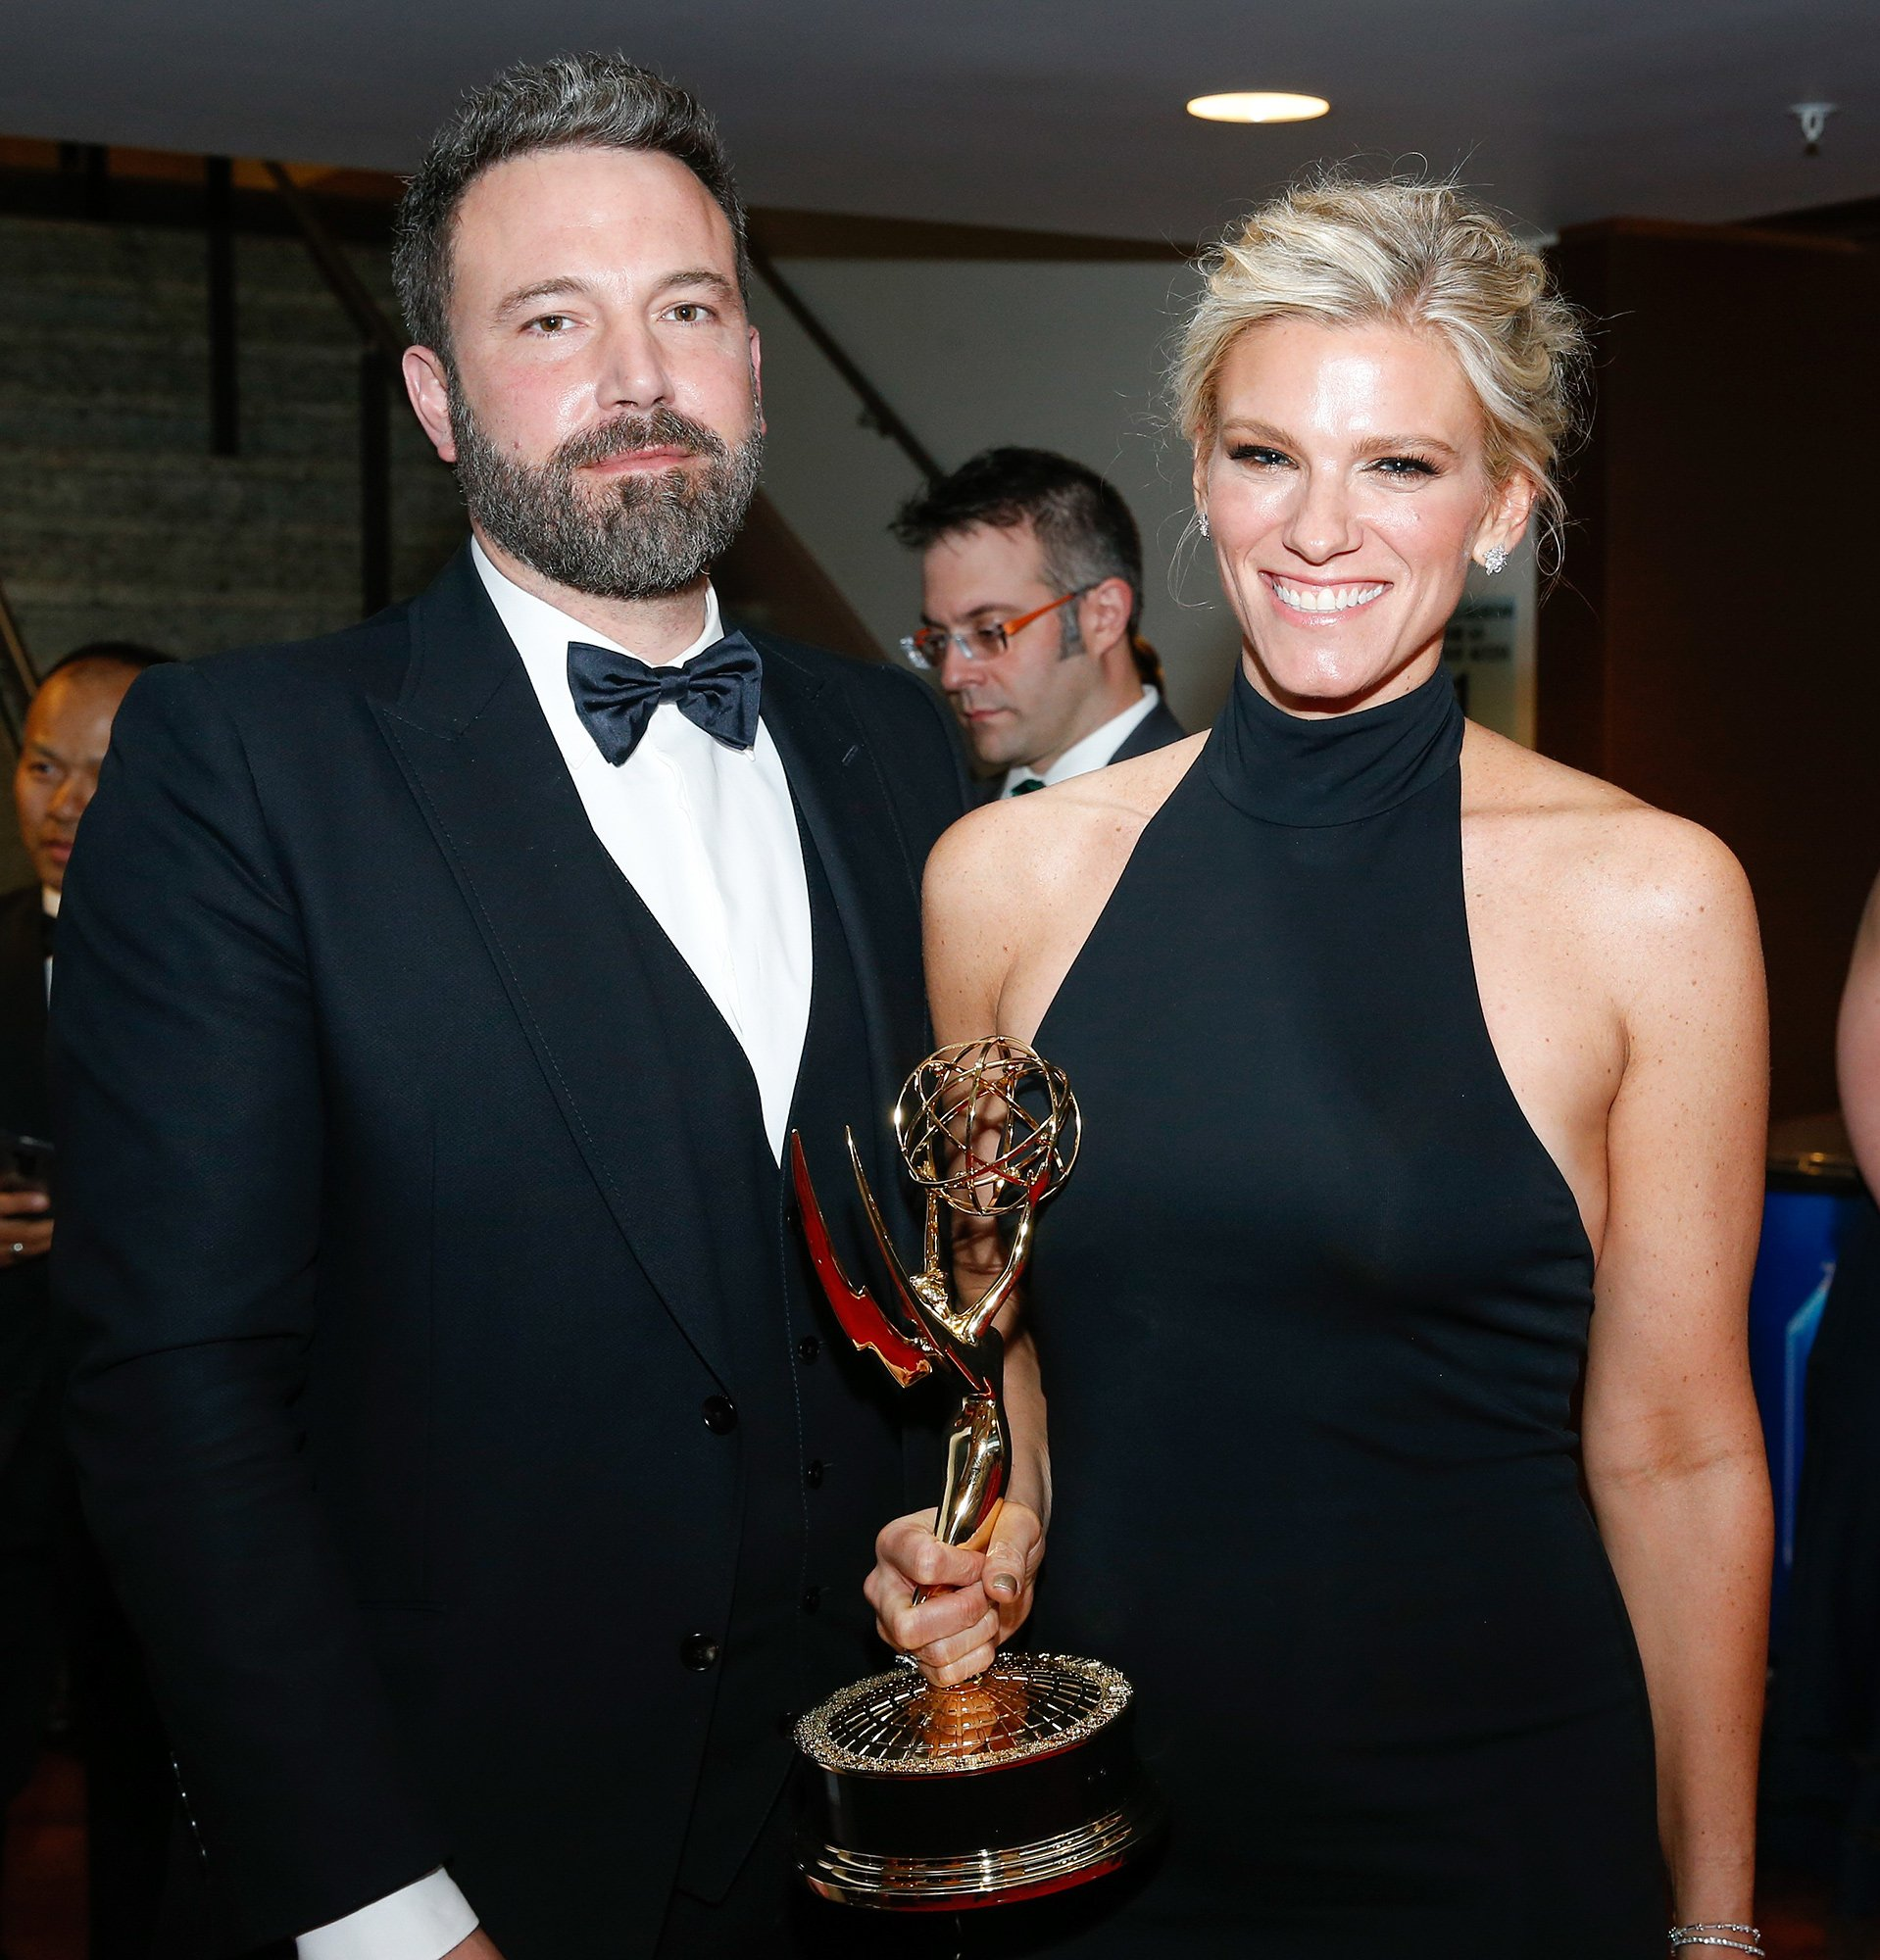 Ben Affleck Was 'Never Fully Committed' to Lindsay Shookus Amid News of Breakup: Source